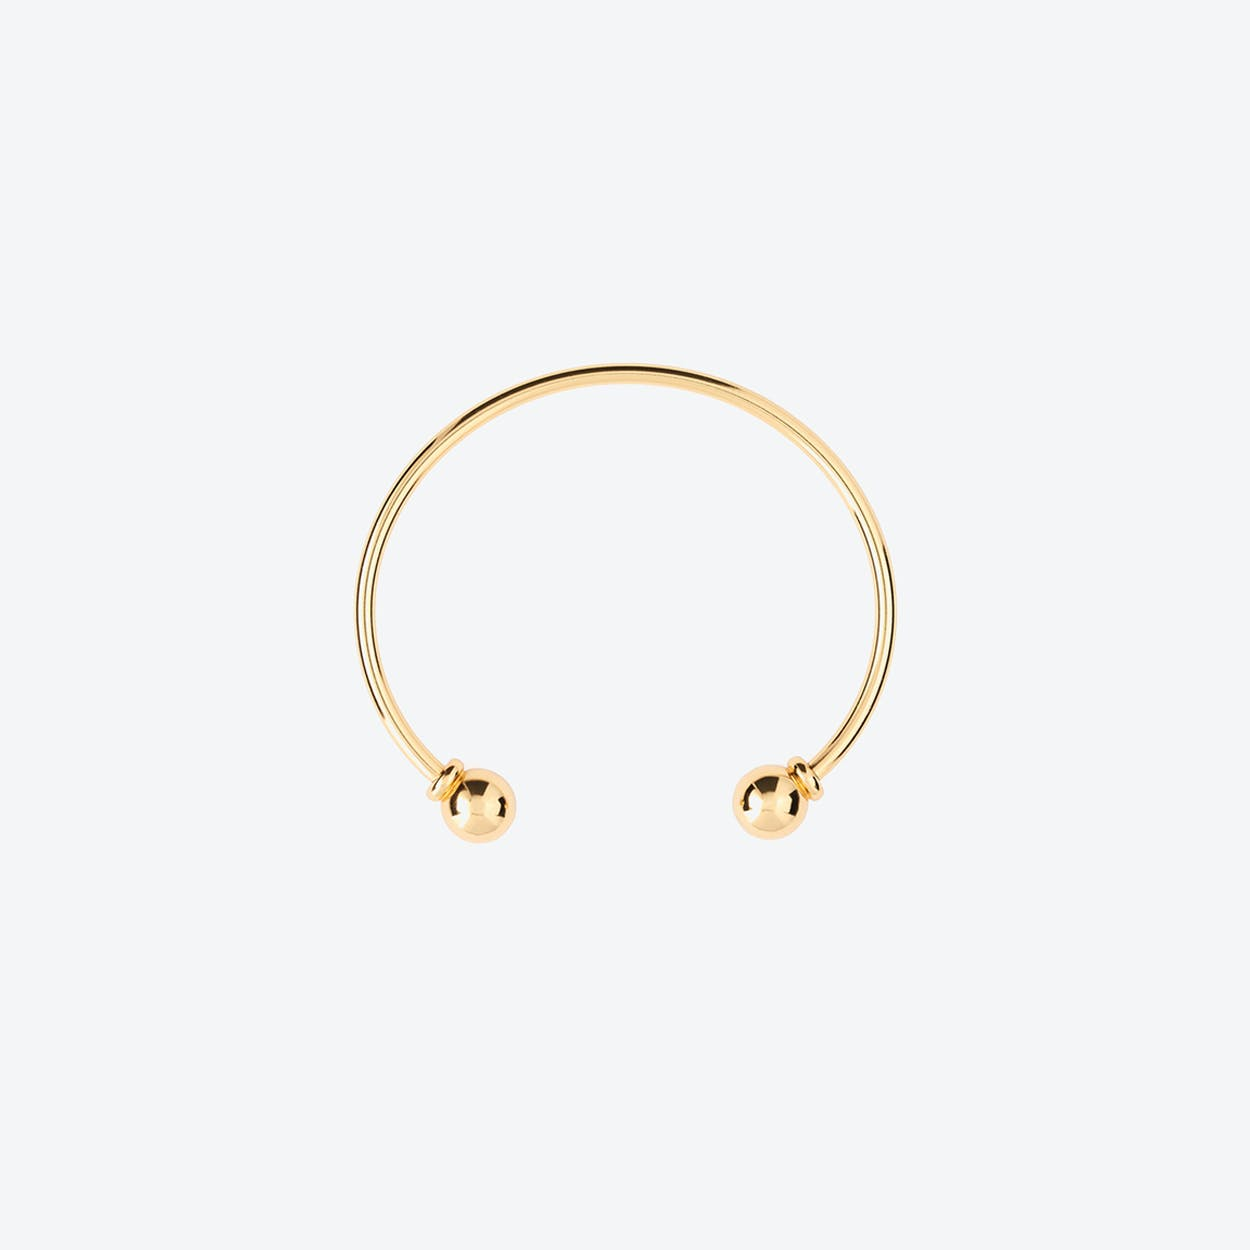 1970s 18k Gold Plated Open Torque Bangle